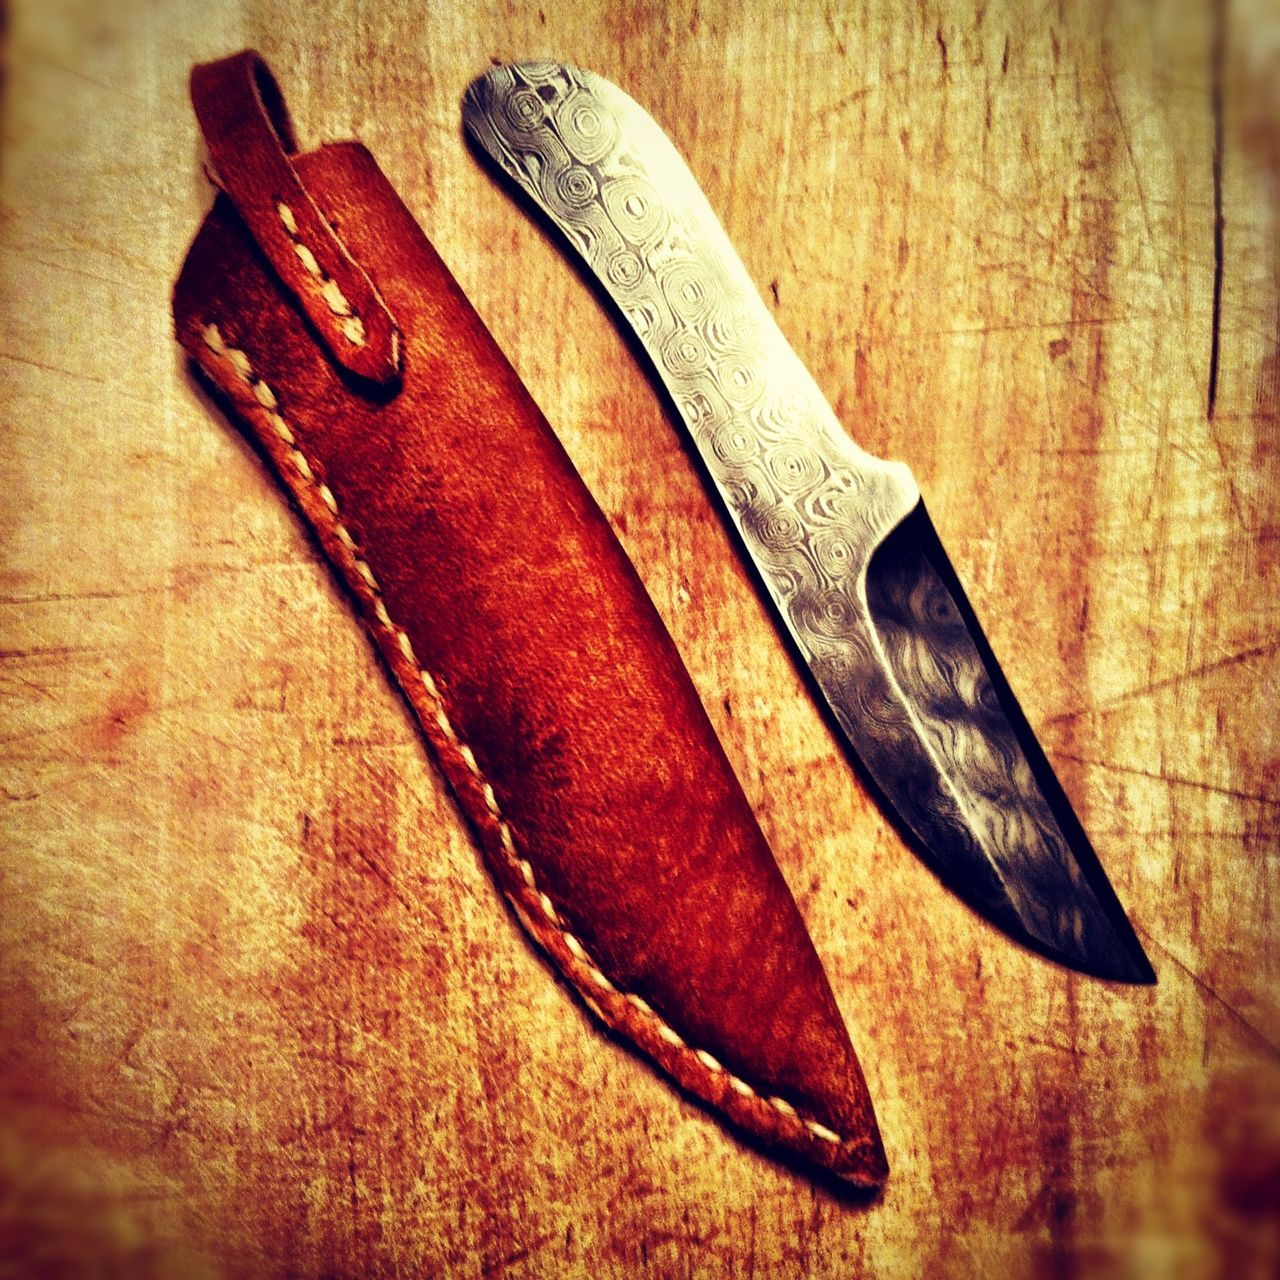 Custom damascus steel blade with sheath fashioned from vintage coach bag.